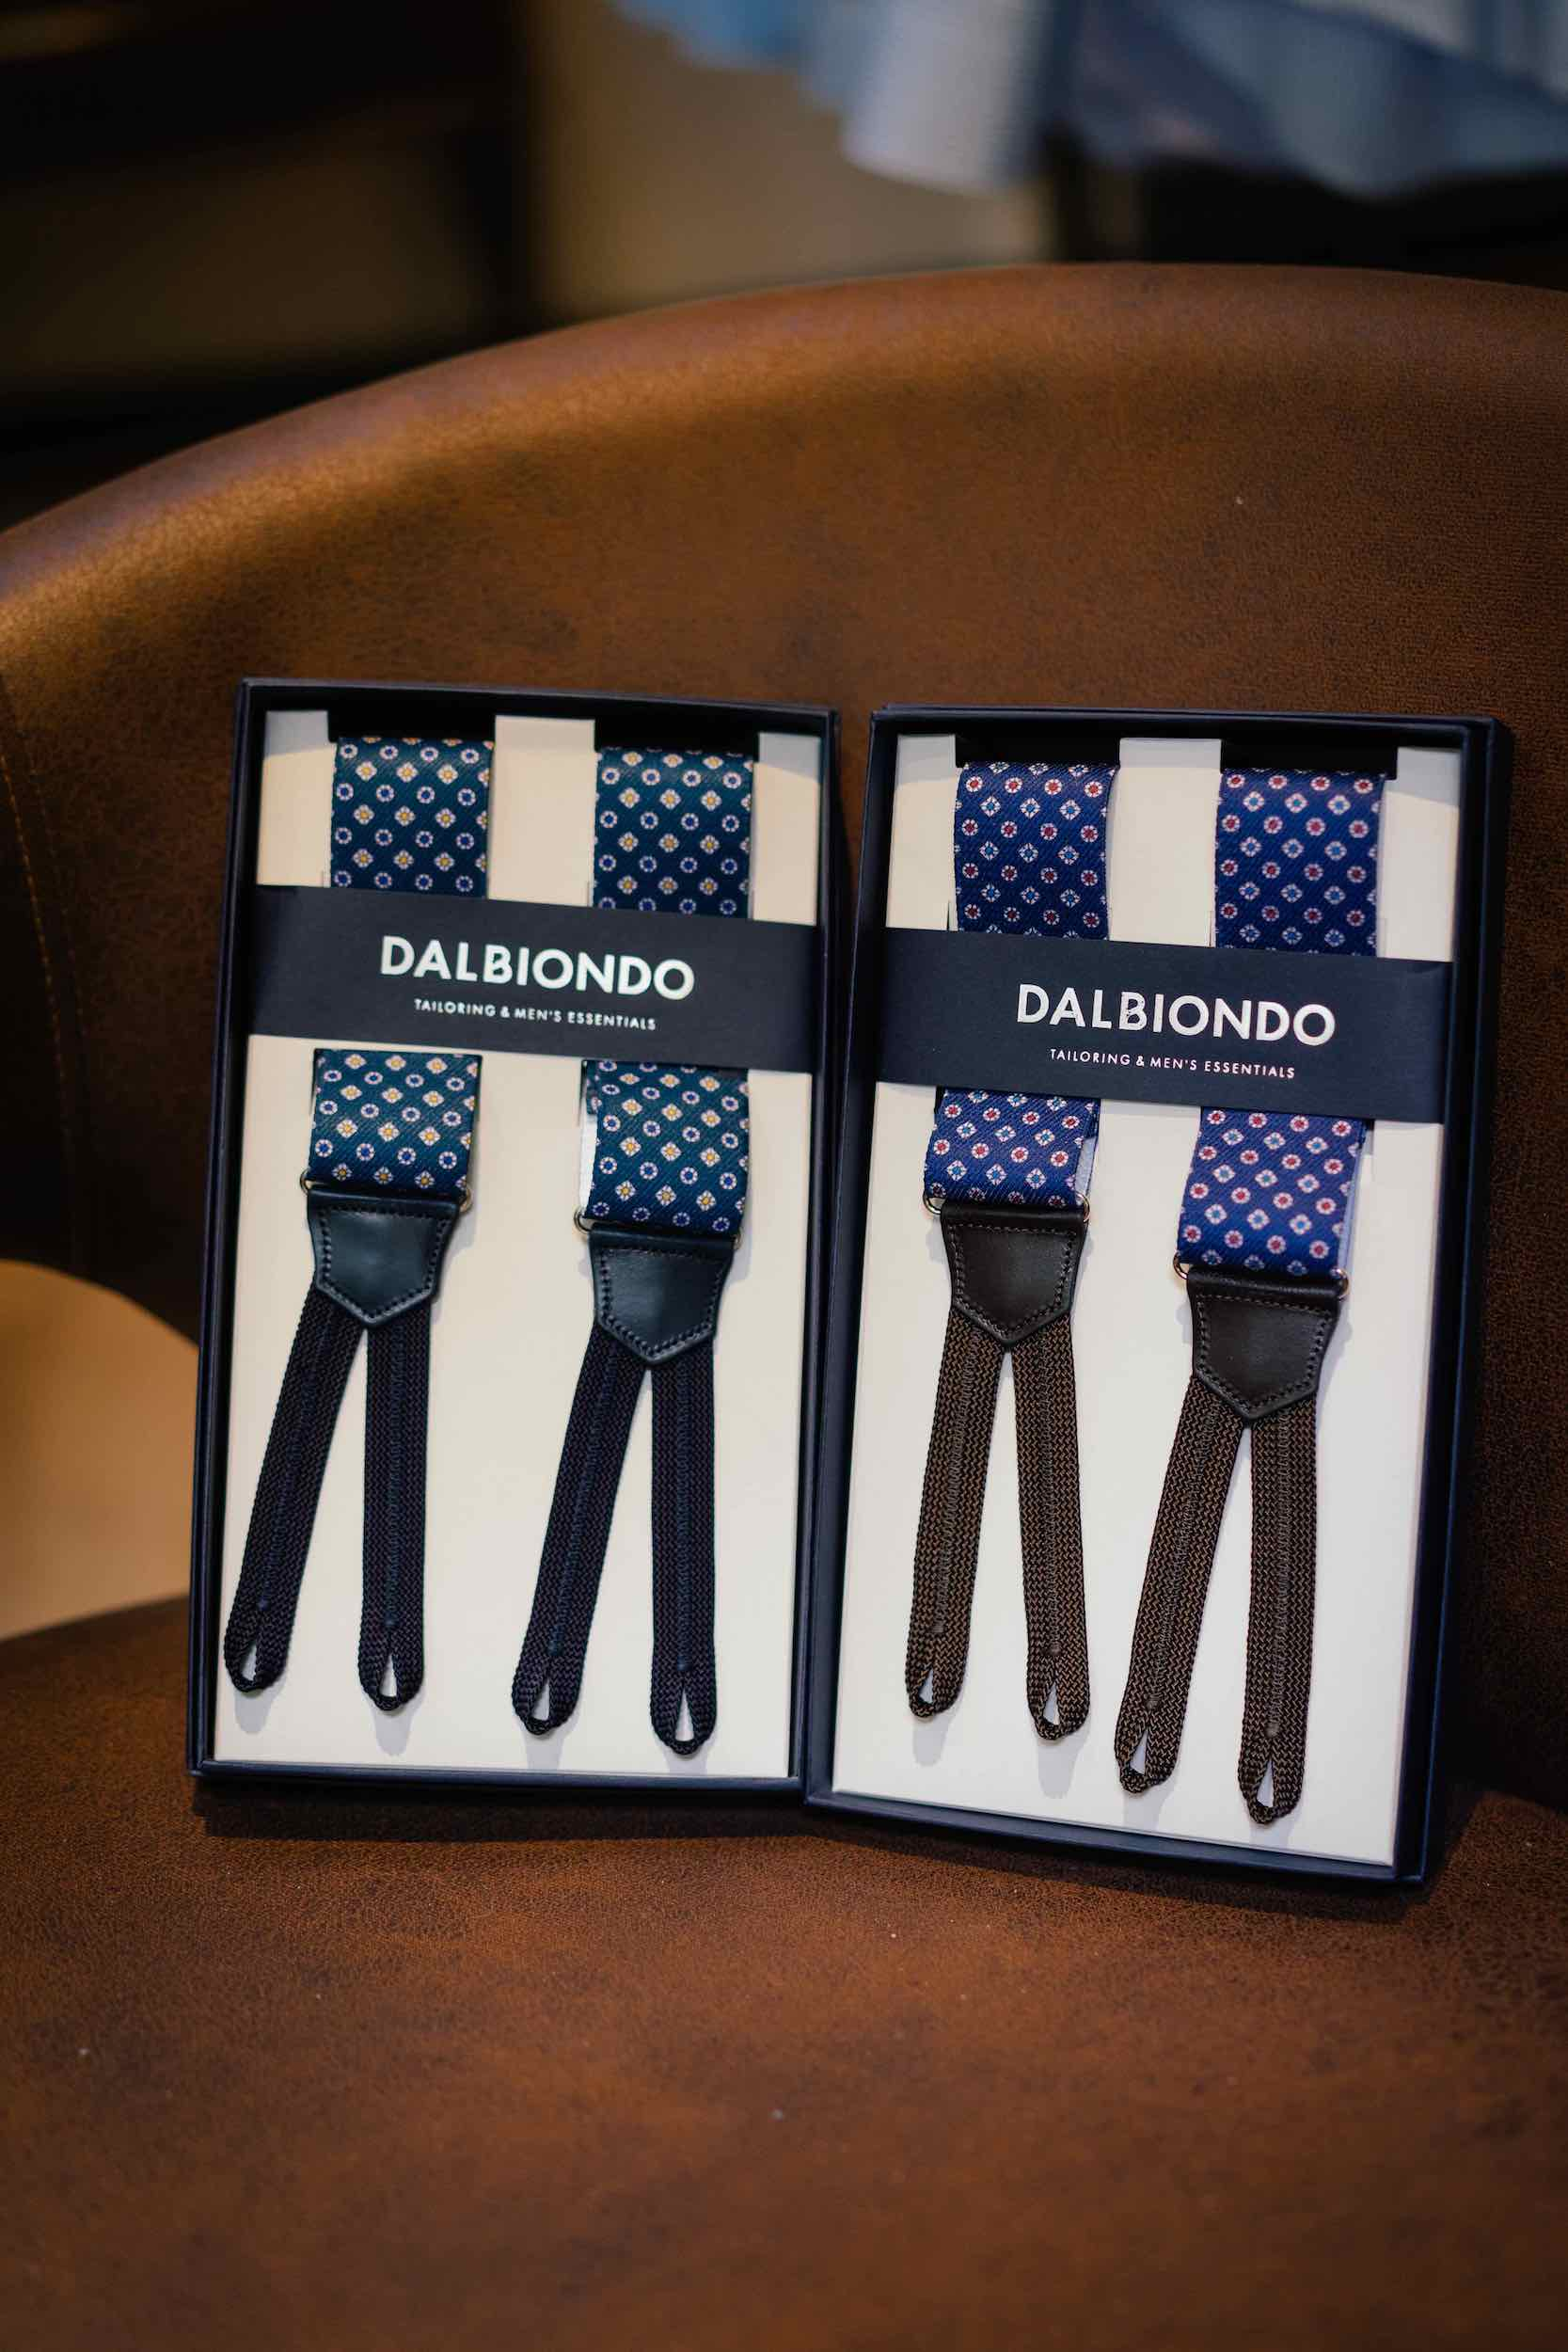 Dalbiondo's Made in Italy suspenders